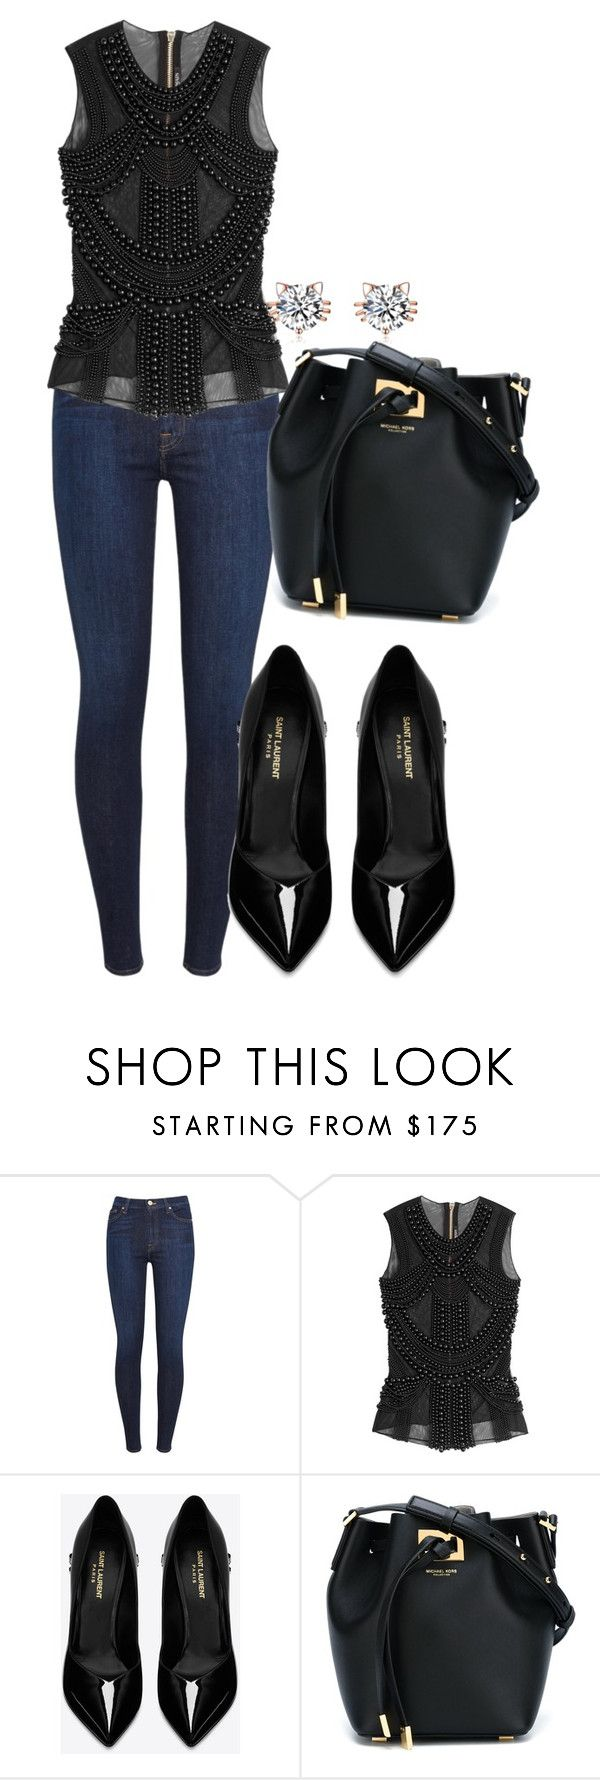 """Untitled #461"" by dreamer3108 on Polyvore featuring 7 For All Mankind, Balmain, Yves Saint Laurent and Michael Kors"